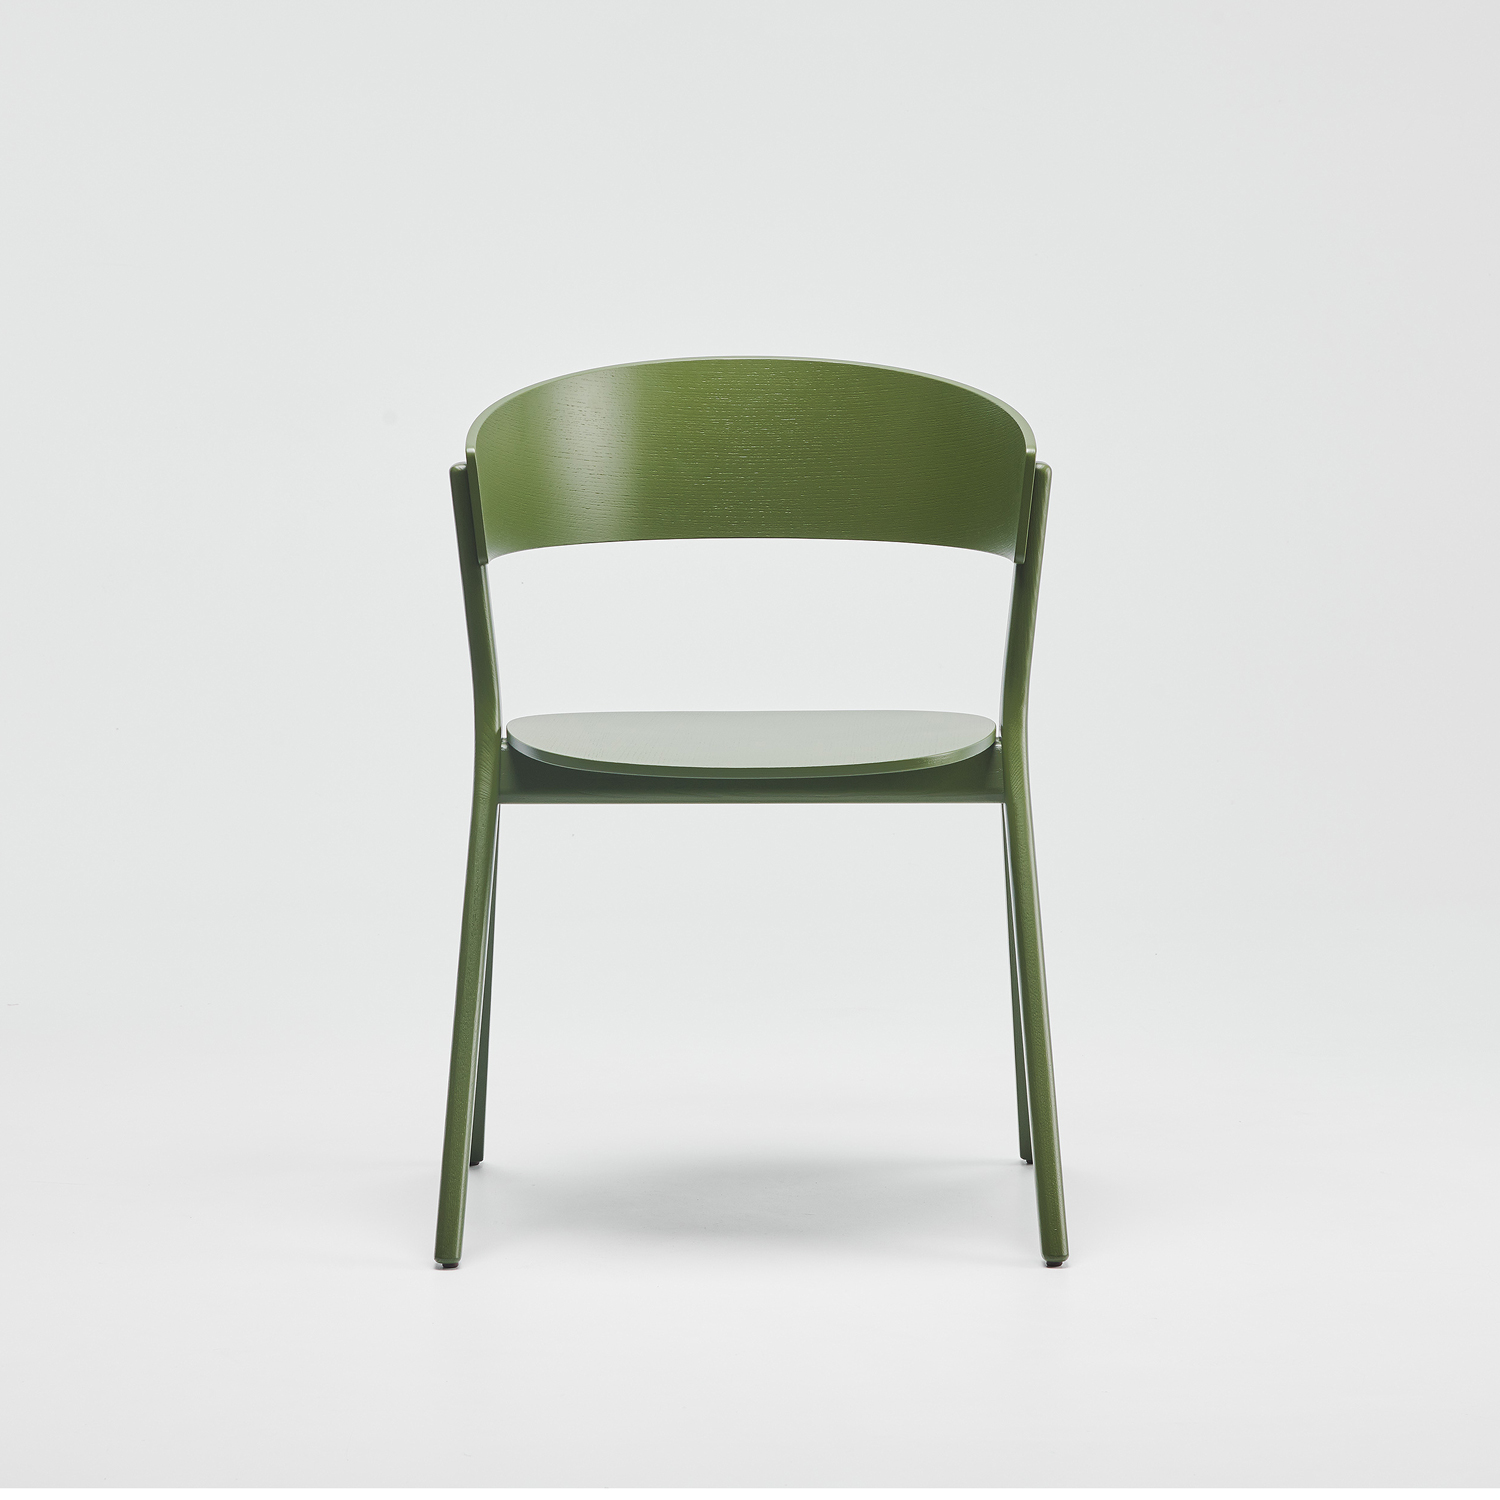 EDITS Circus wood chair in Oliver Green lacquer